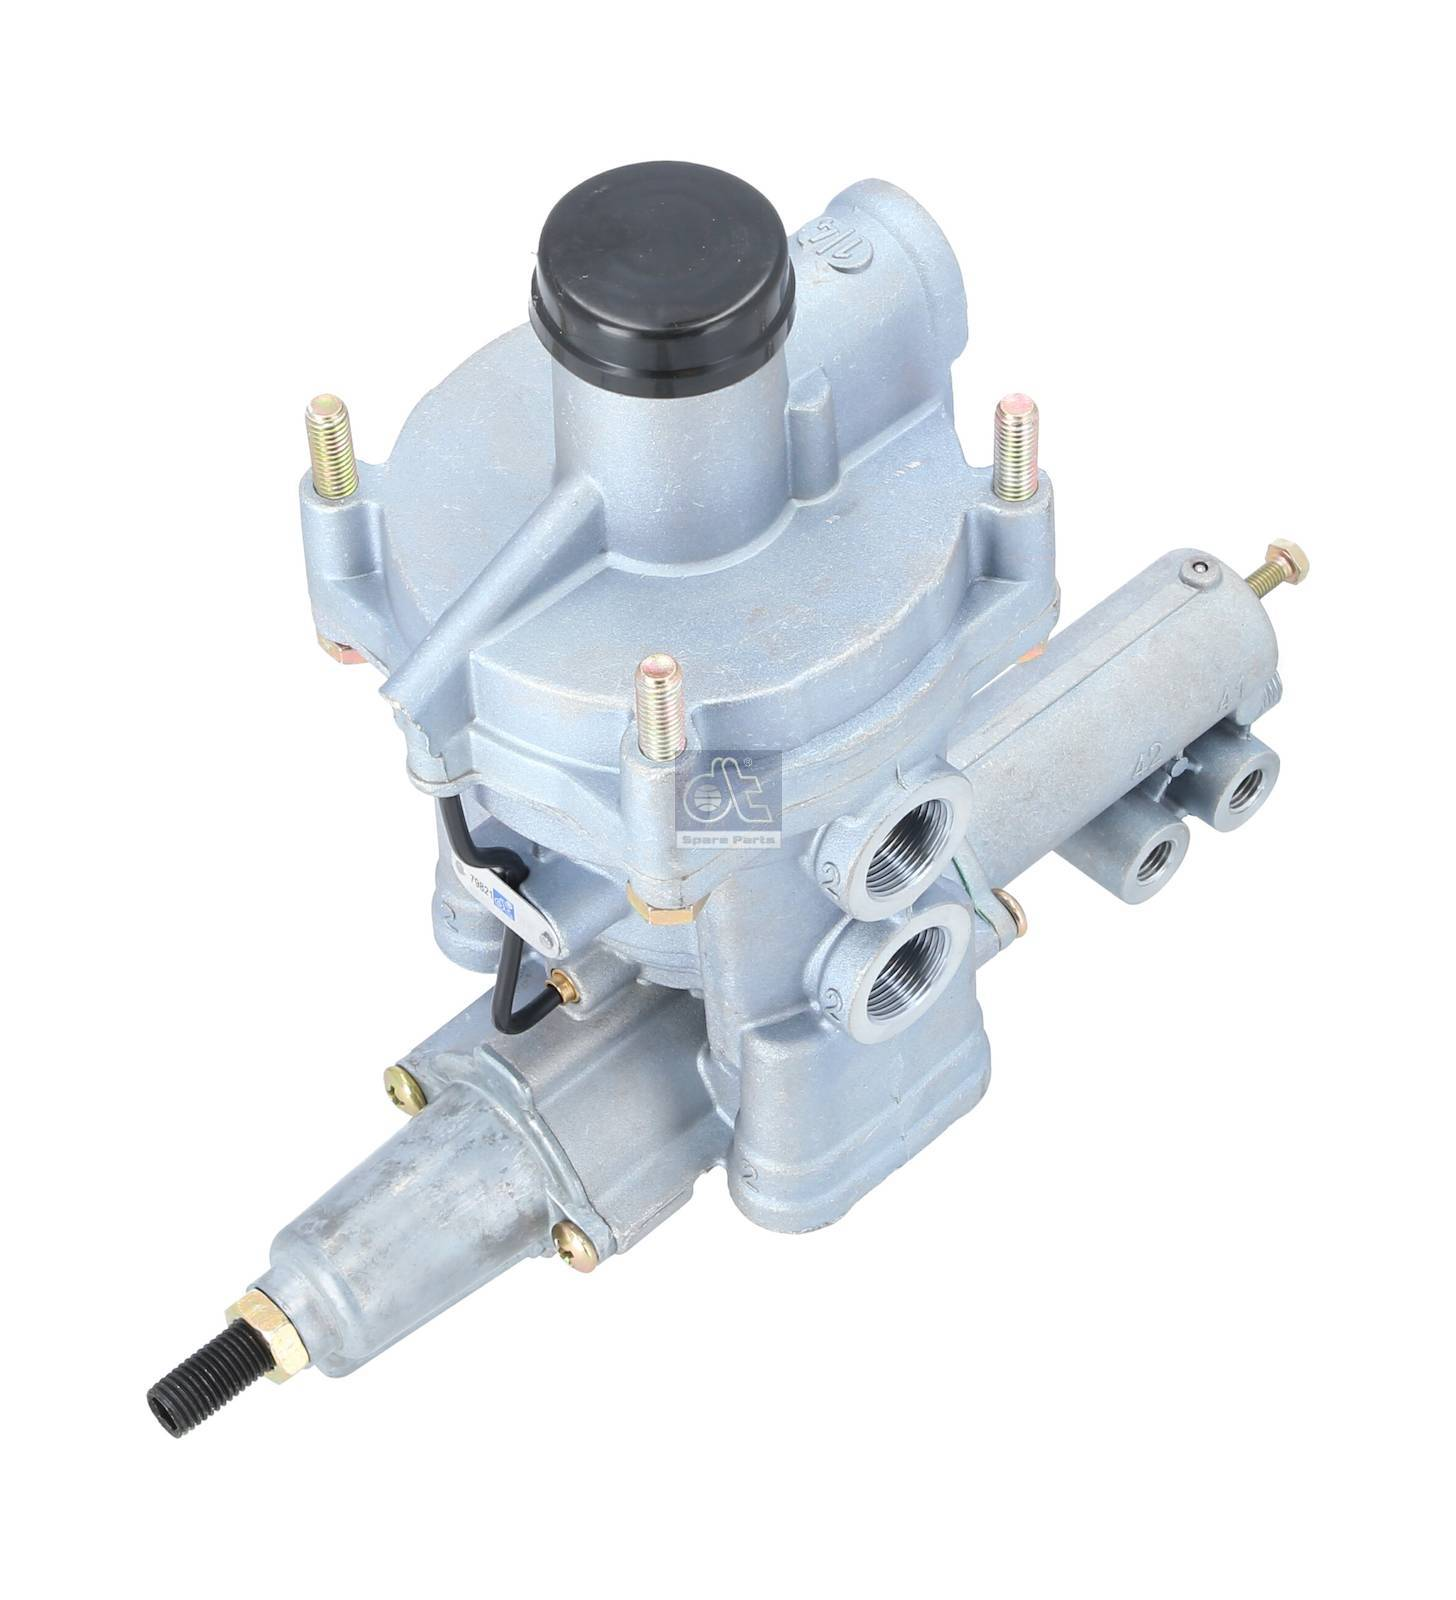 Load sensitive valve